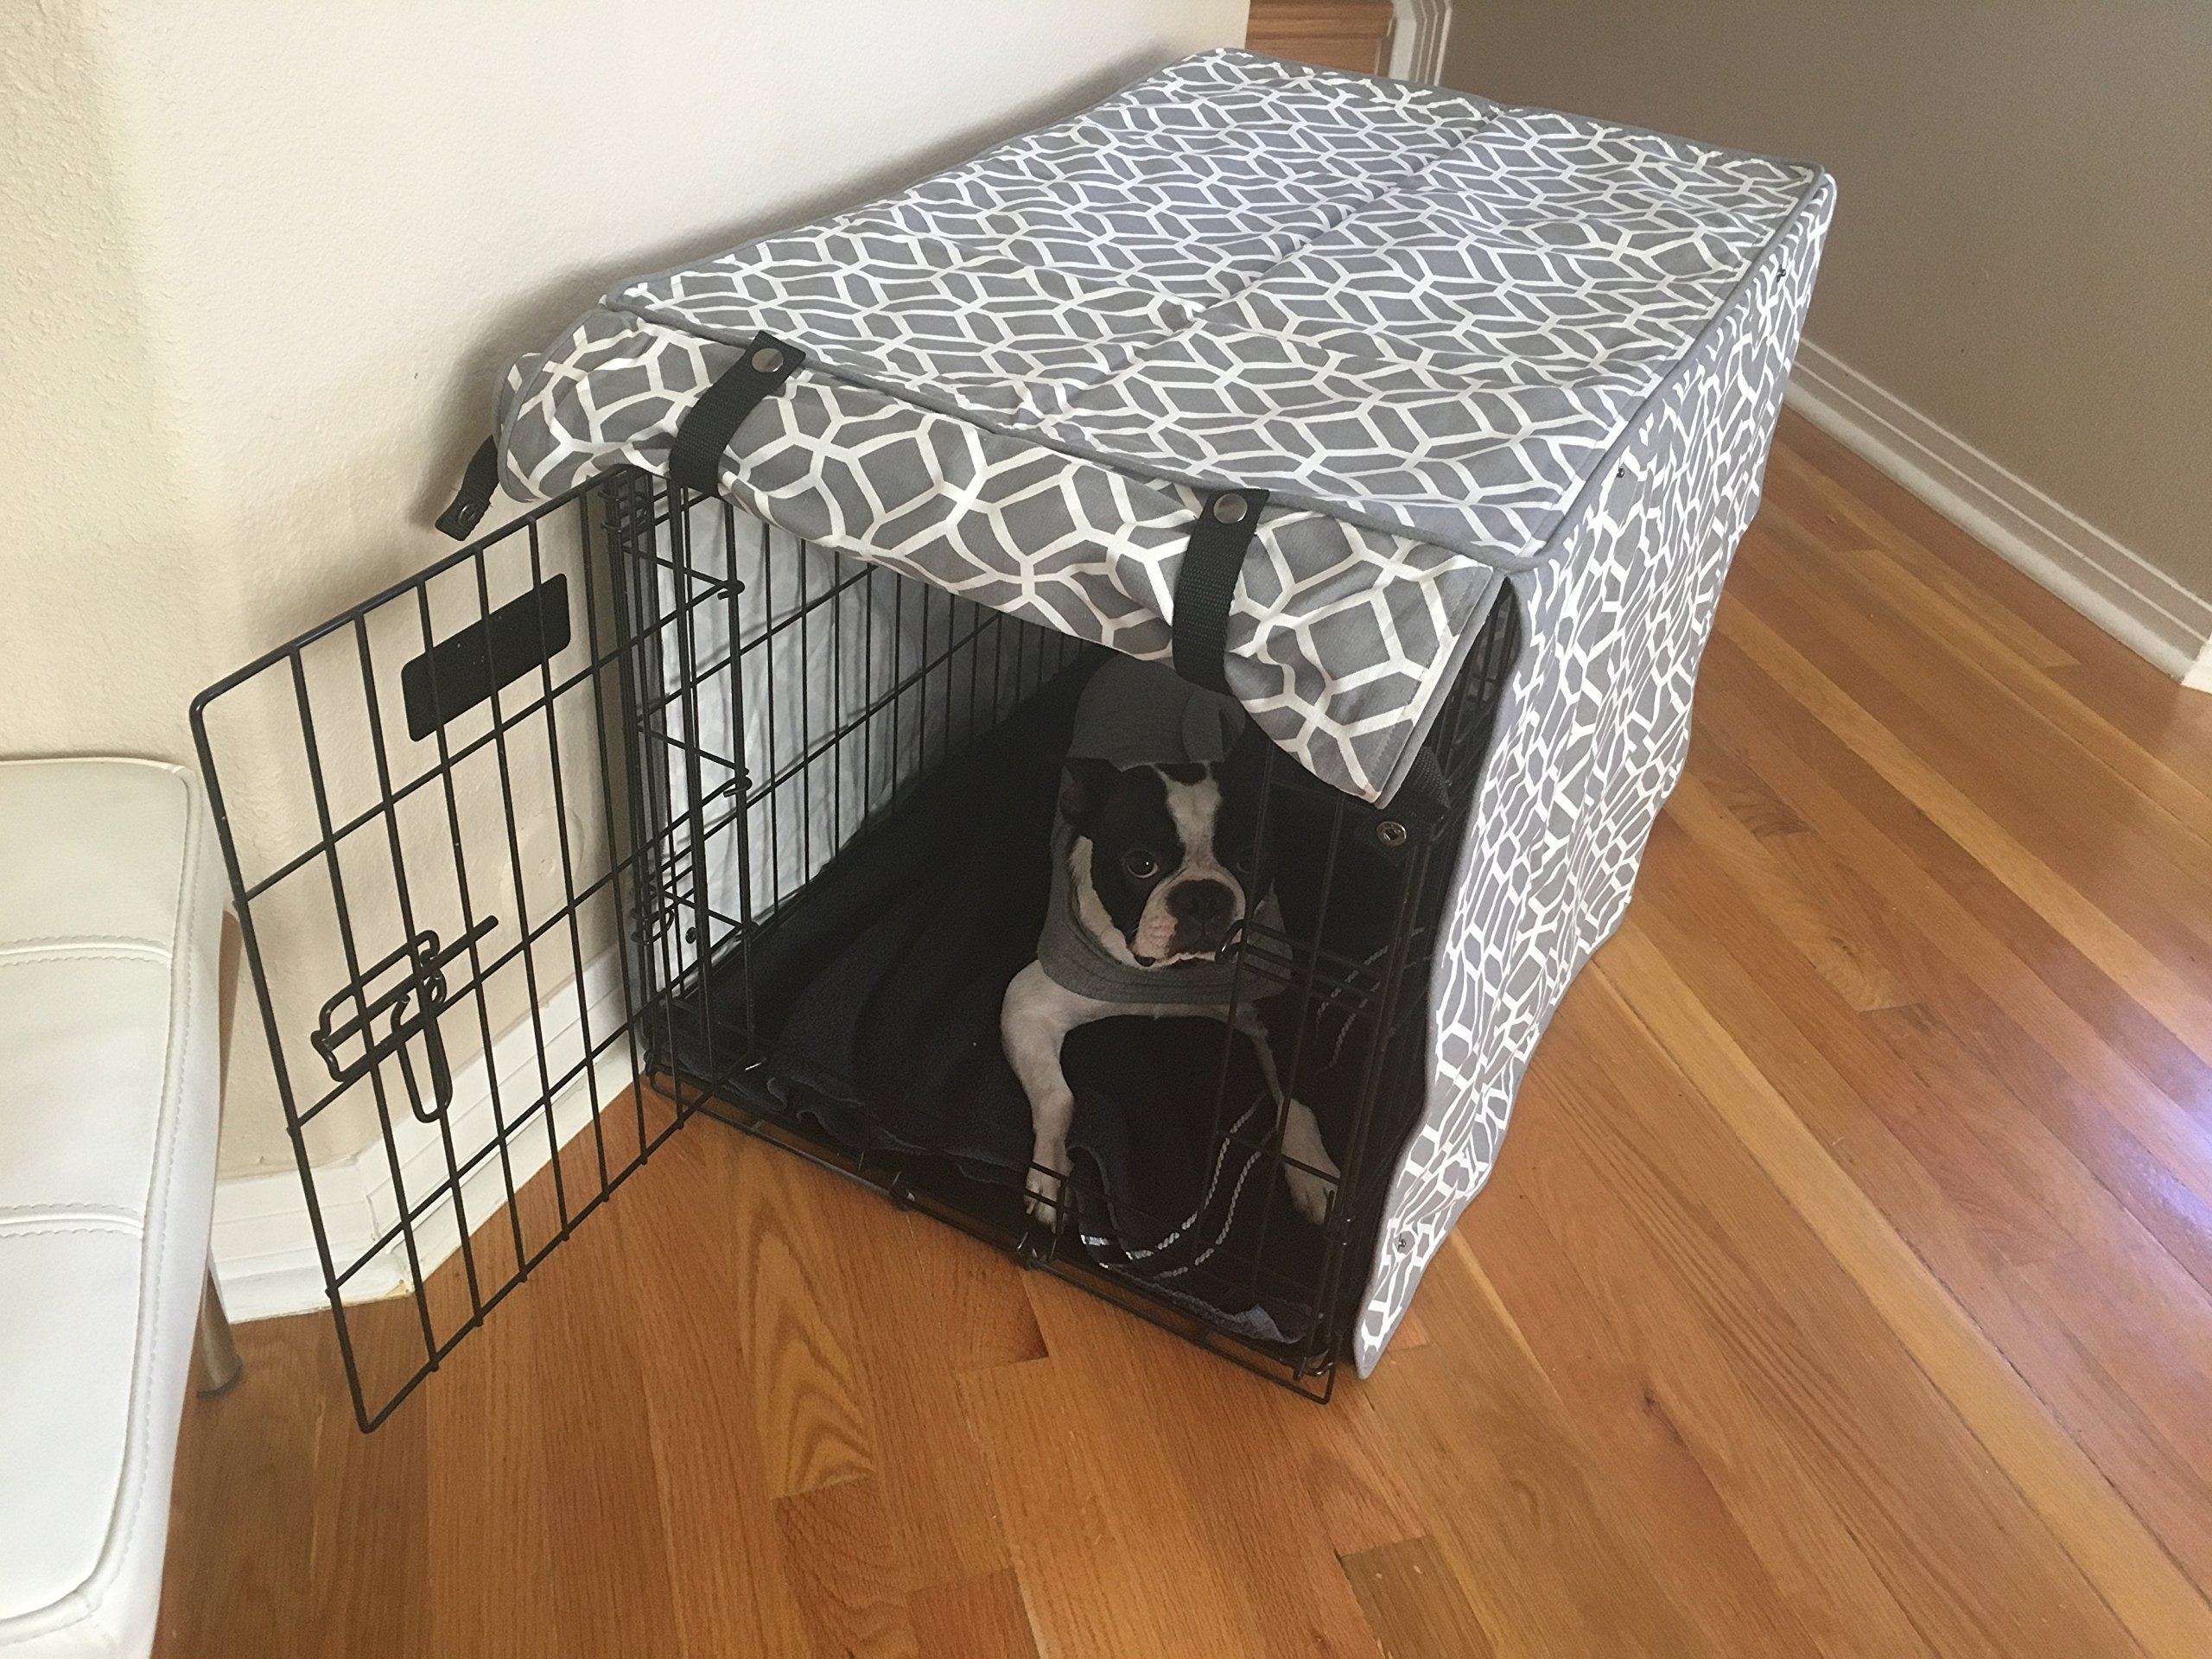 528 Zone Gray & White Stained Glass Print Grey Dog Pet Wire Kennel Crate Cage House Cover (Small, Medium, Large, XL, XXL) (LARGE 36x24x27) by 528 Zone